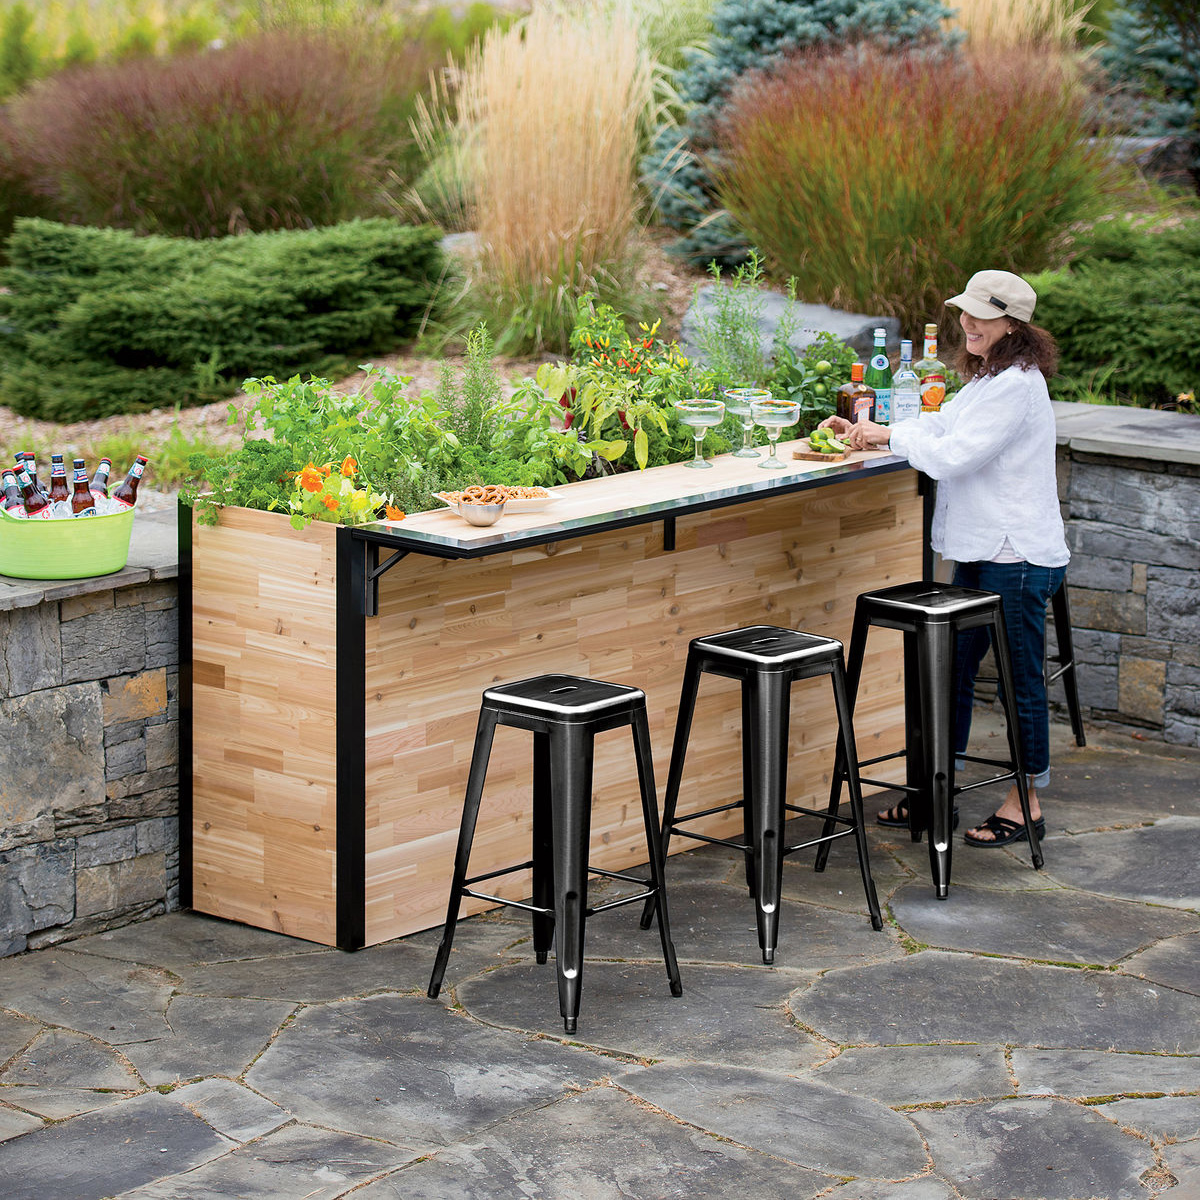 Outdoor Patio Accessories Of Plant A Bar Wooden Outdoor Bar And Planter The Green Head